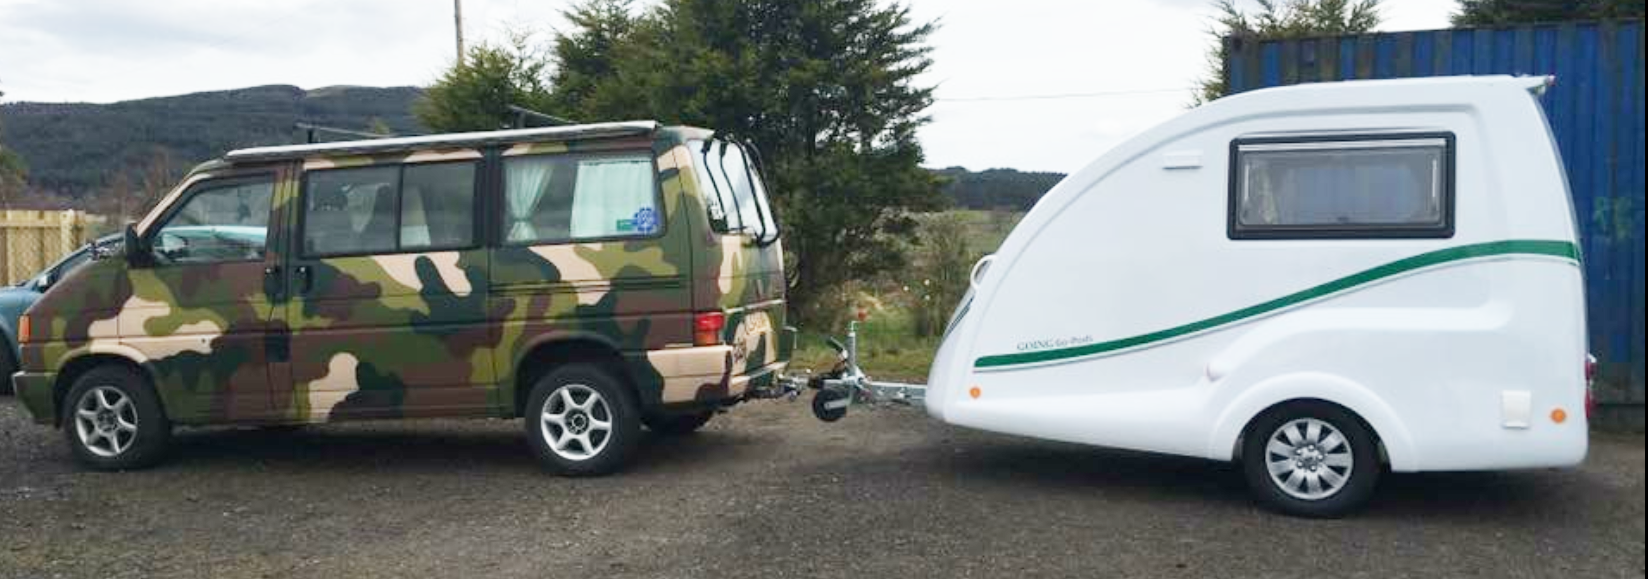 Go Pod - Camper Van Alternative 6 - Camo VW combo